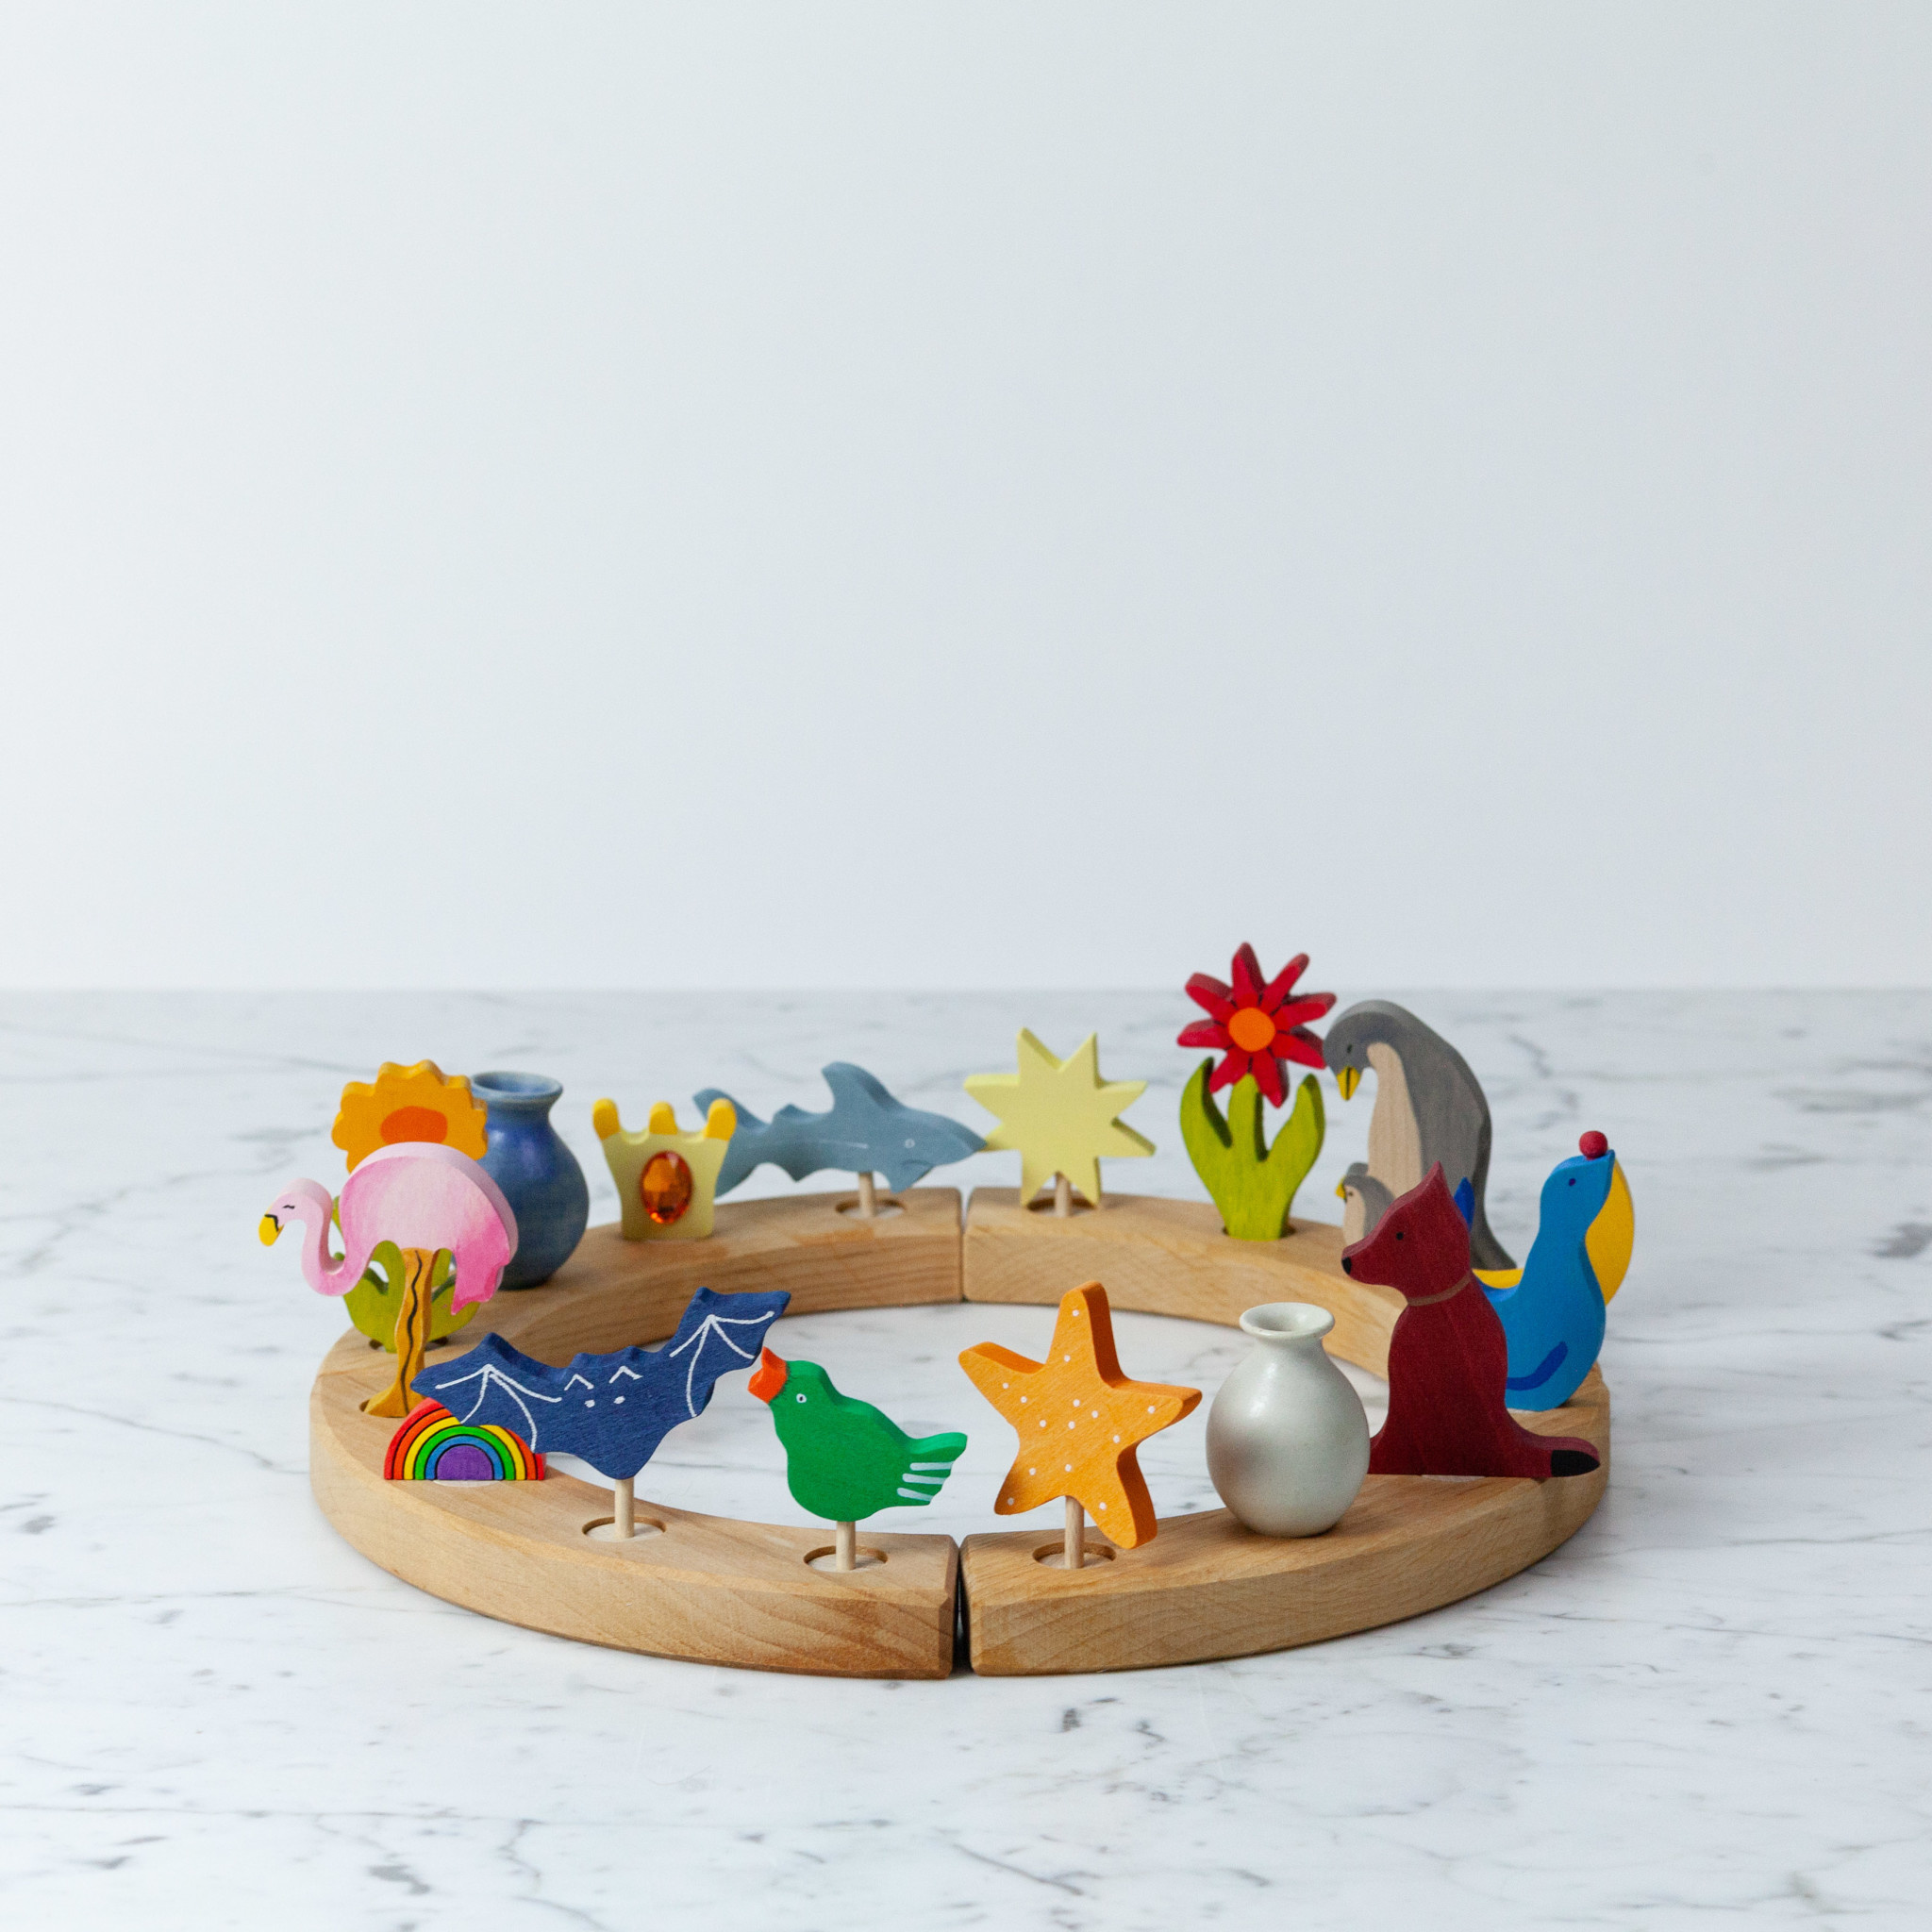 Celebration And Birthday Ring Large The Foundry Home Goods